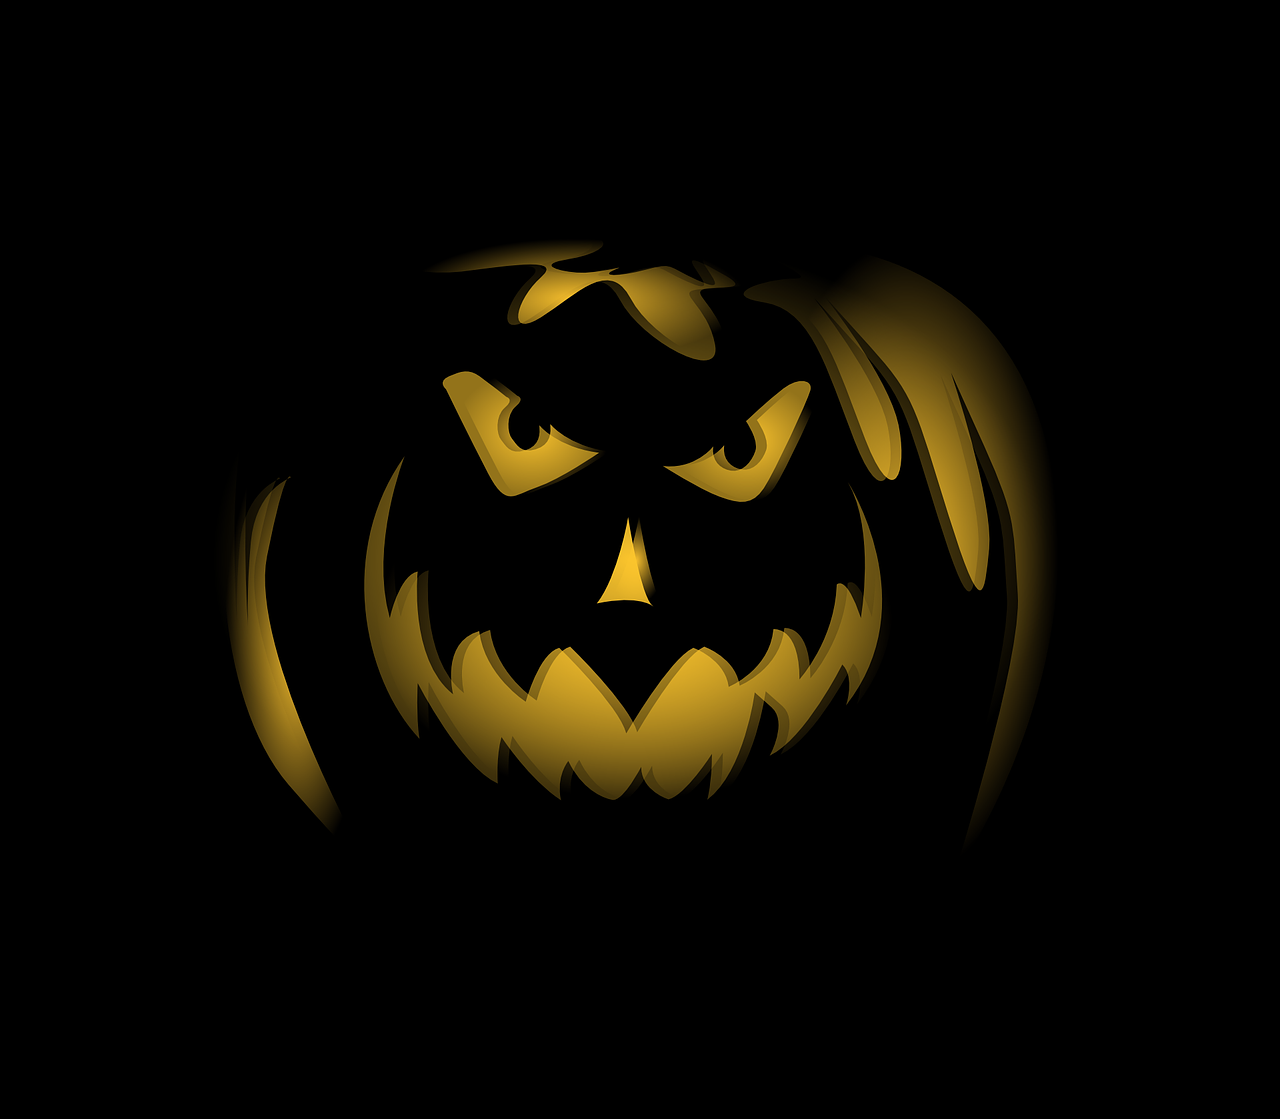 halloween,pumpkin,jack o lantern,spooky,carved,lit,night,grinning,scary,holiday,autumn,october,fall,seasonal,creepy,decor,traditional,free vector graphics,free pictures, free photos, free images, royalty free, free illustrations, public domain